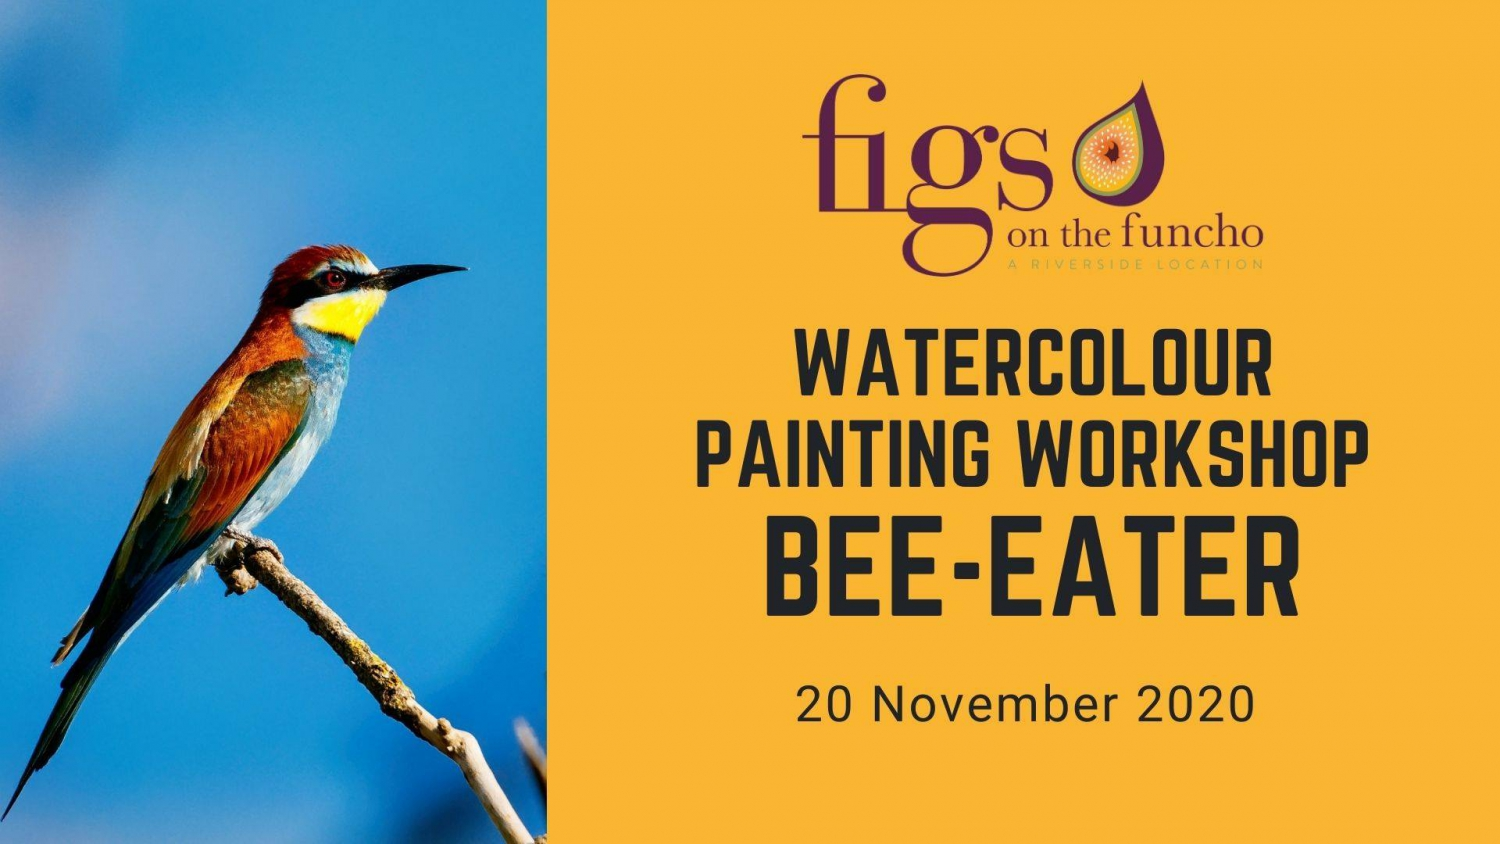 Watercolour Painting Workshop - Figs on the Funcho - Portugal